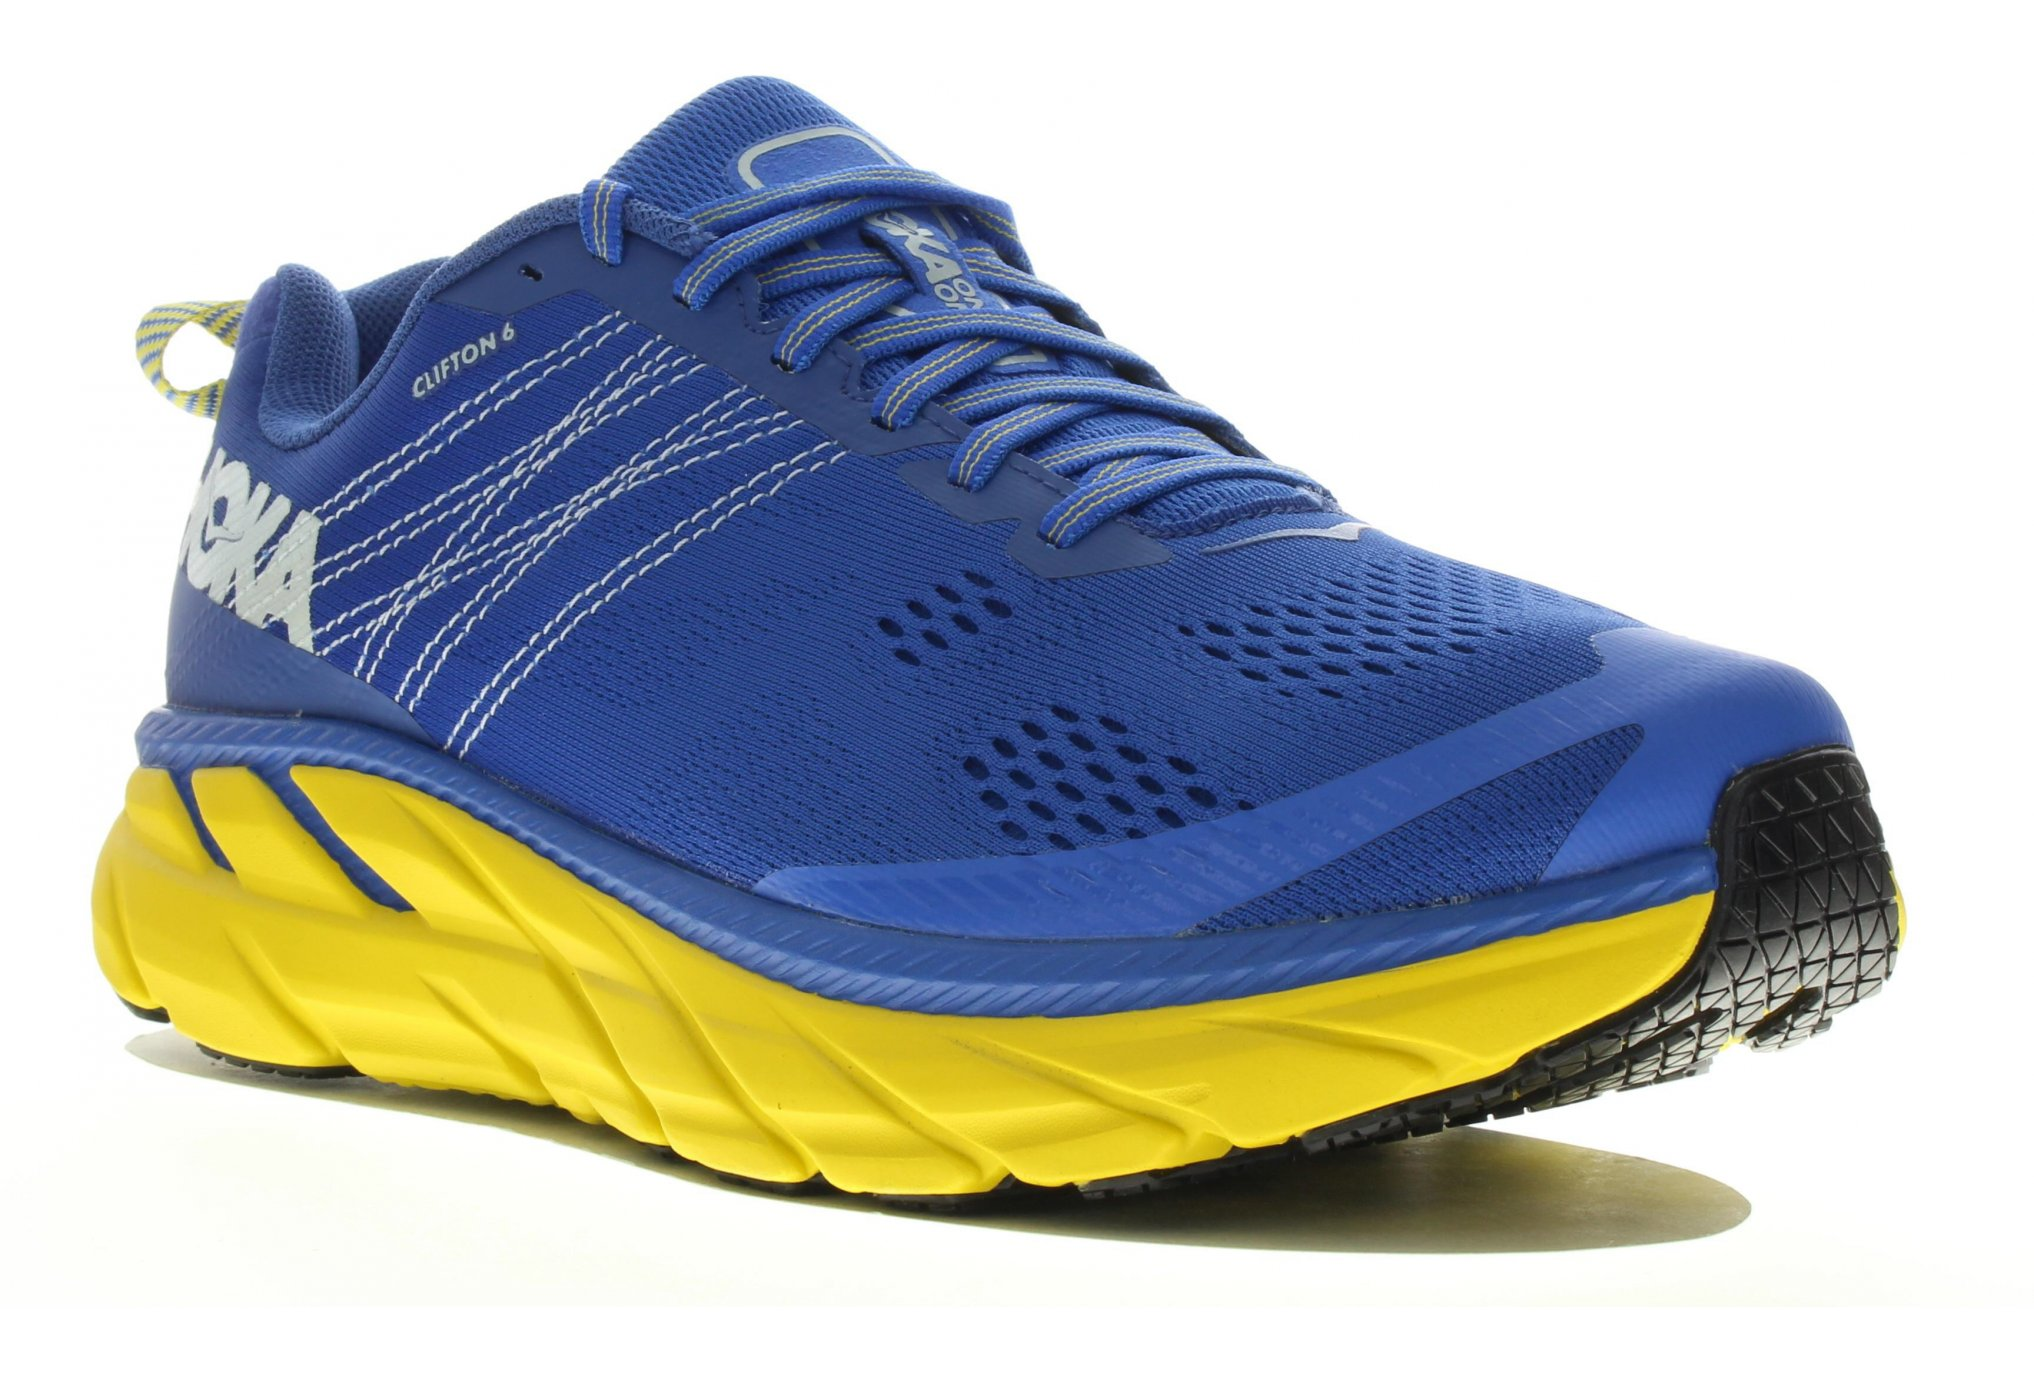 Hoka One One Clifton 6 Wide Chaussures homme